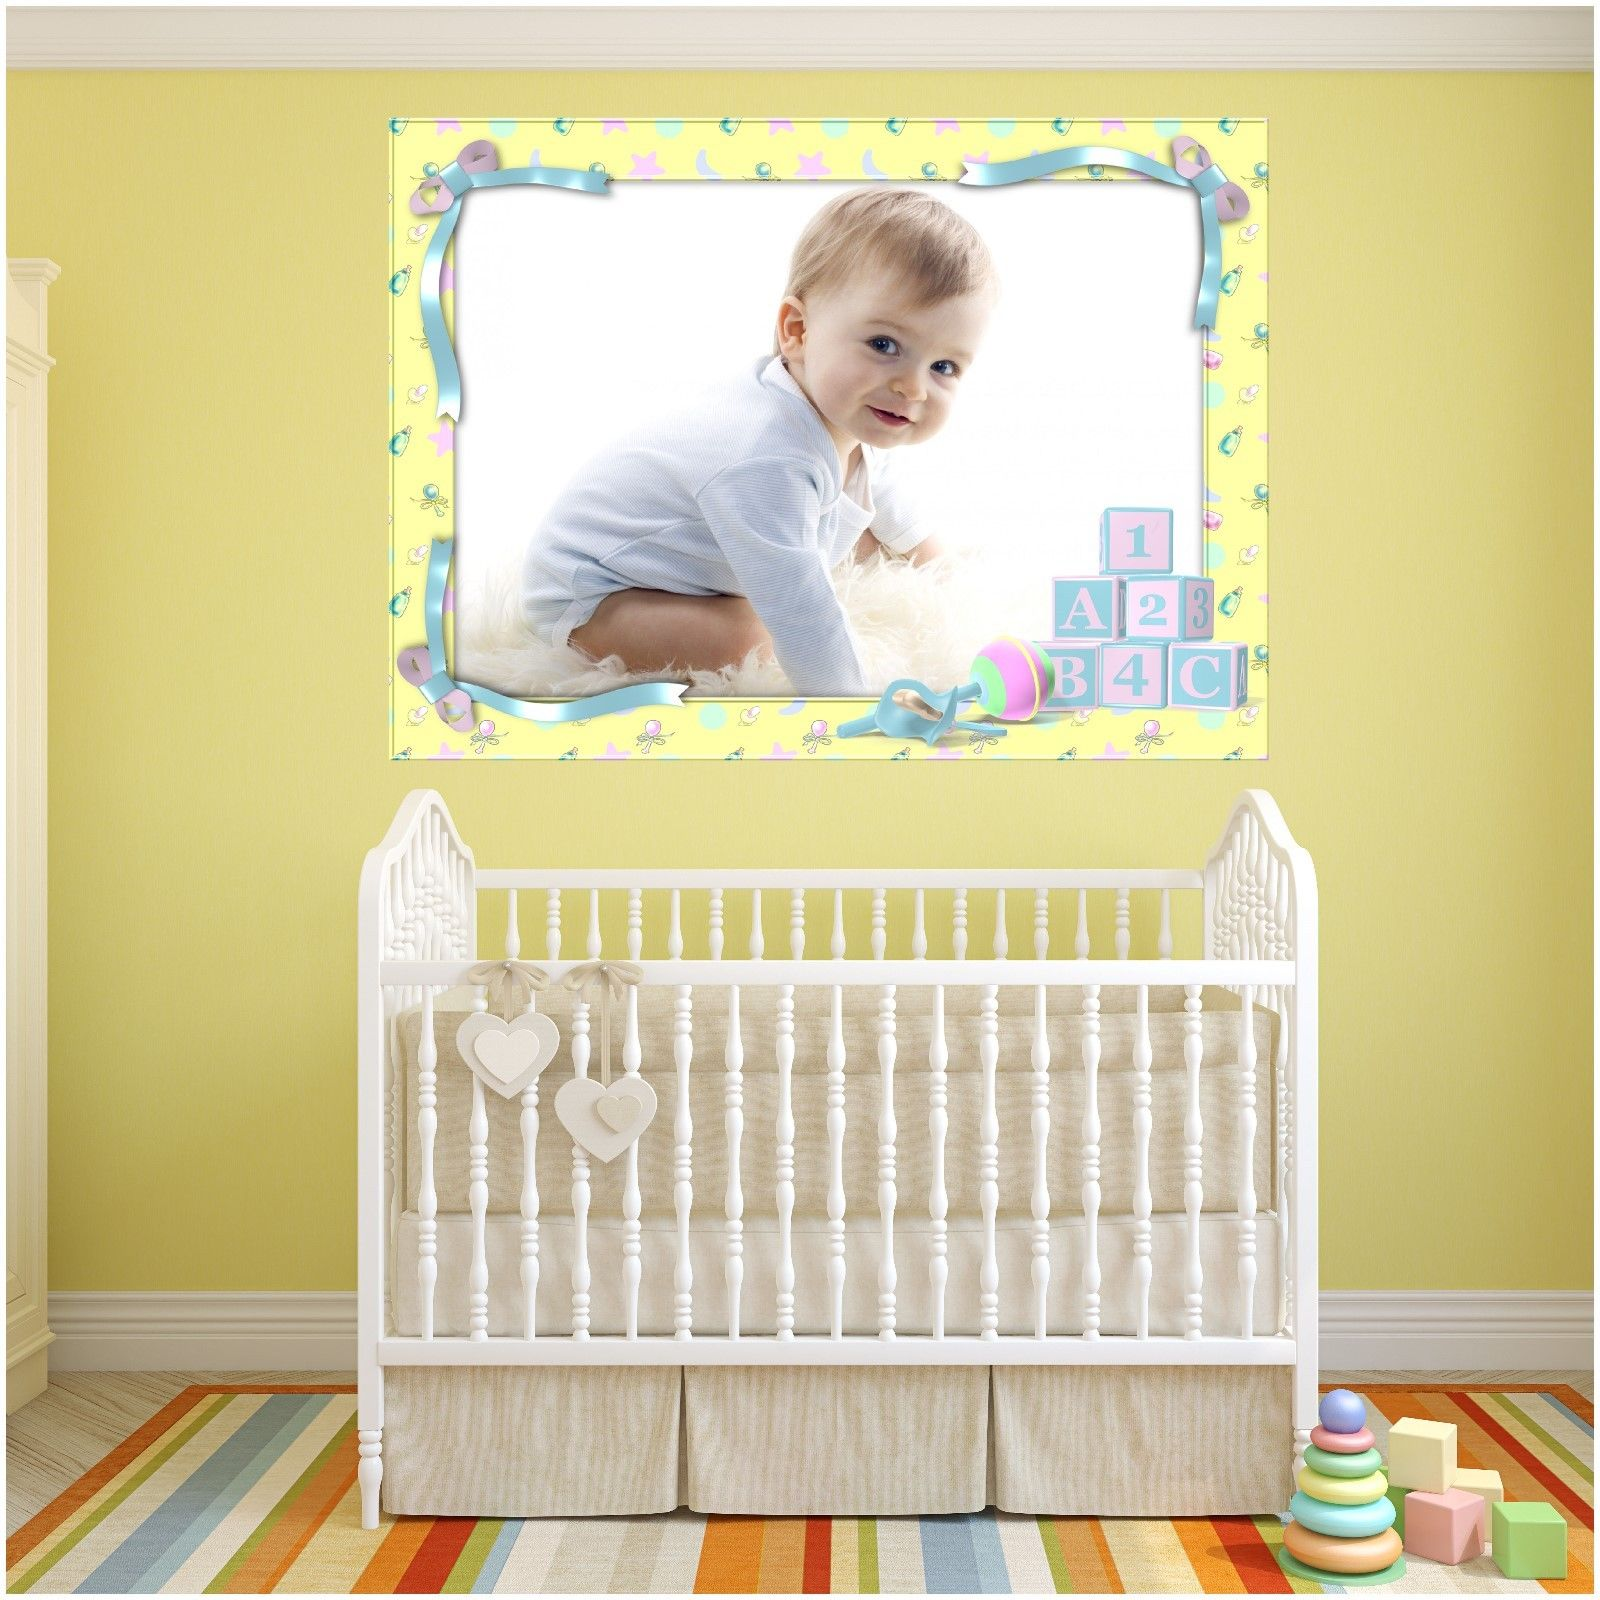 Your Baby\'s Photograph Printed with Frame as wall art sticker 7 size ...